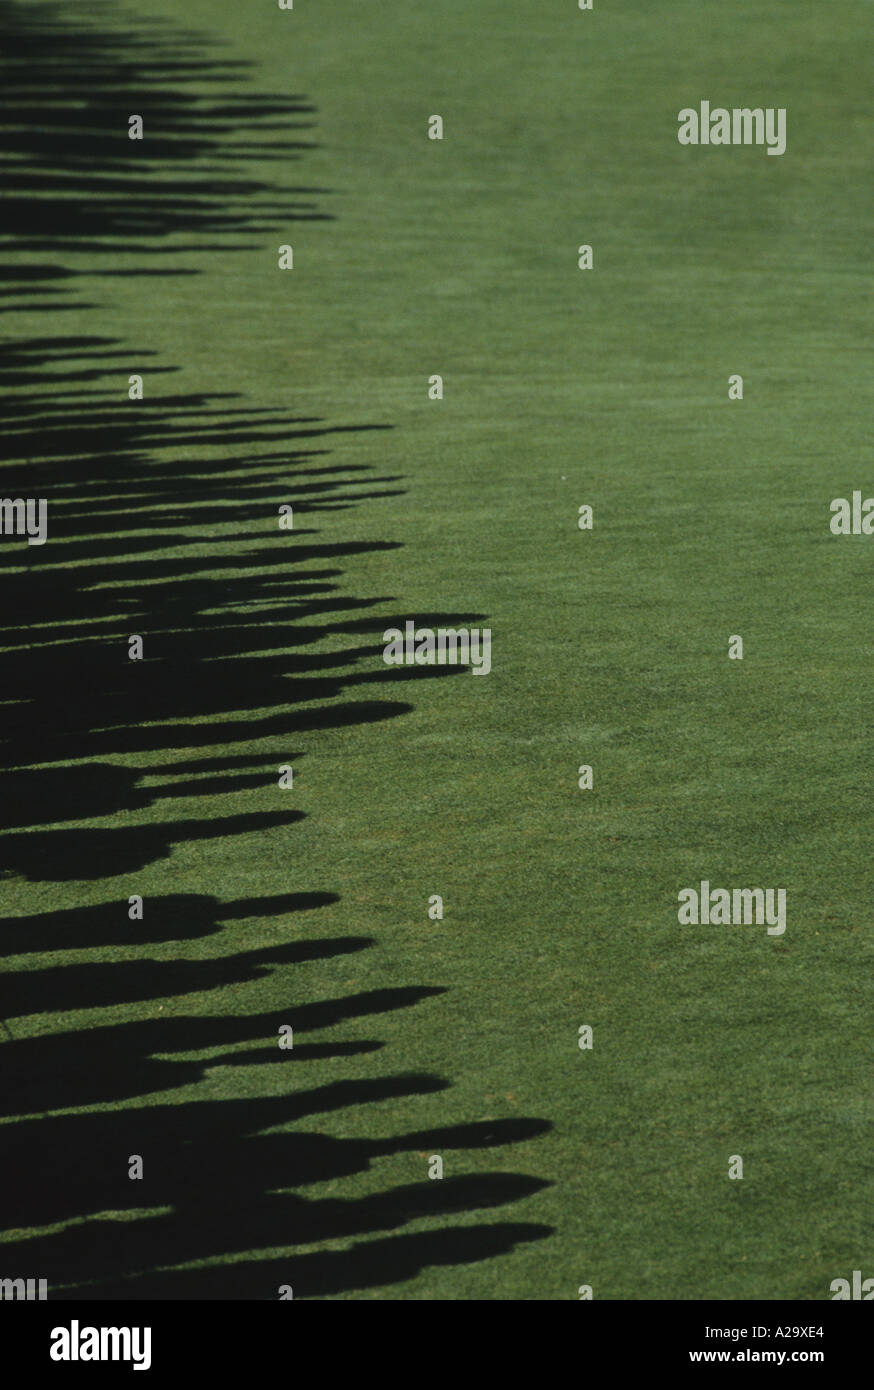 A line of shadows on the grass cast by spectators during a golf tournament - Stock Image